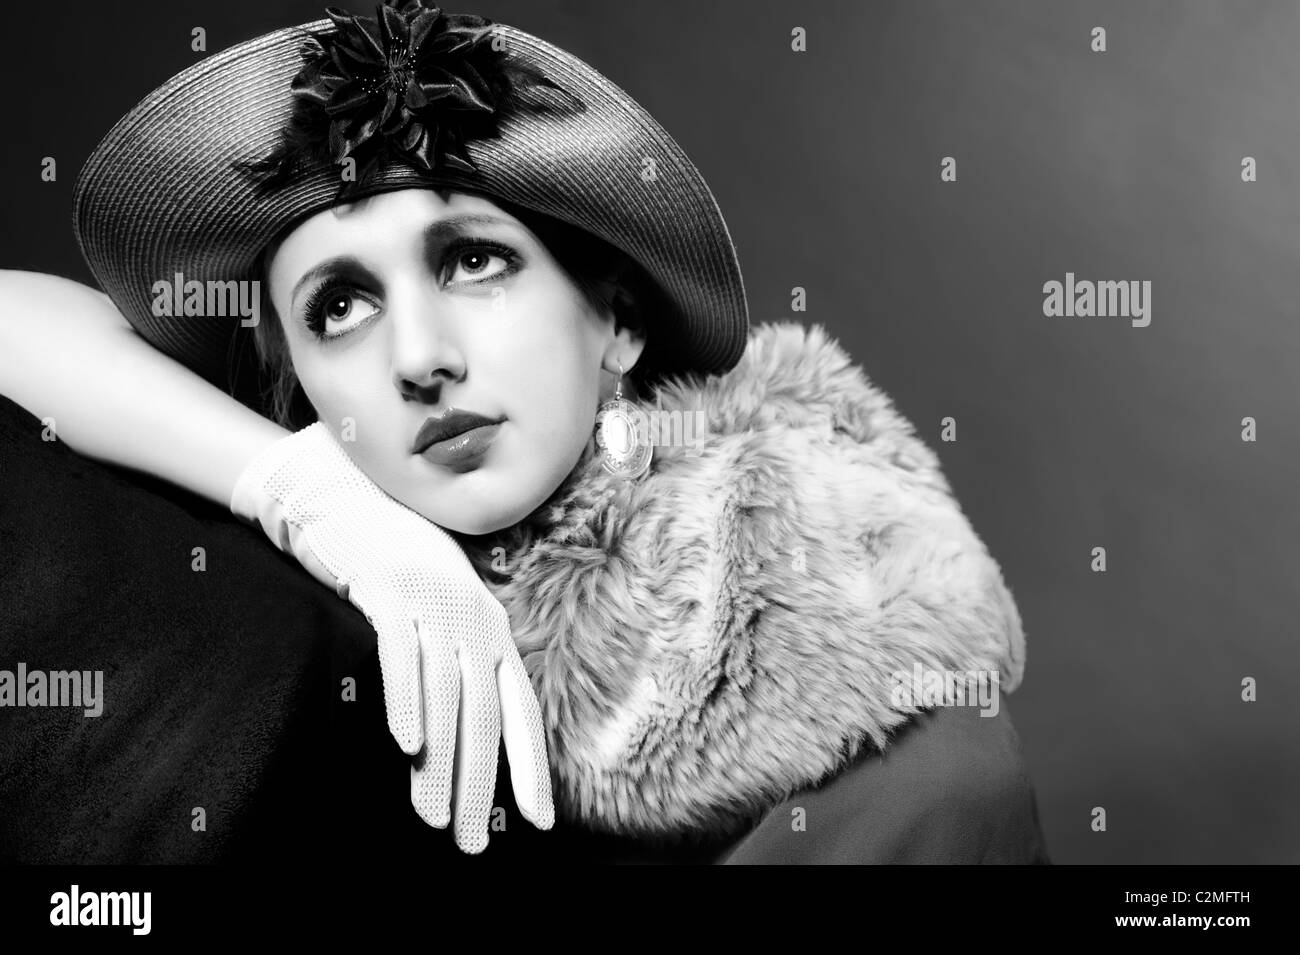 Retro styled fashion portrait of a young woman in hat. Clothing and make-up in vintage 1920s style - Stock Image